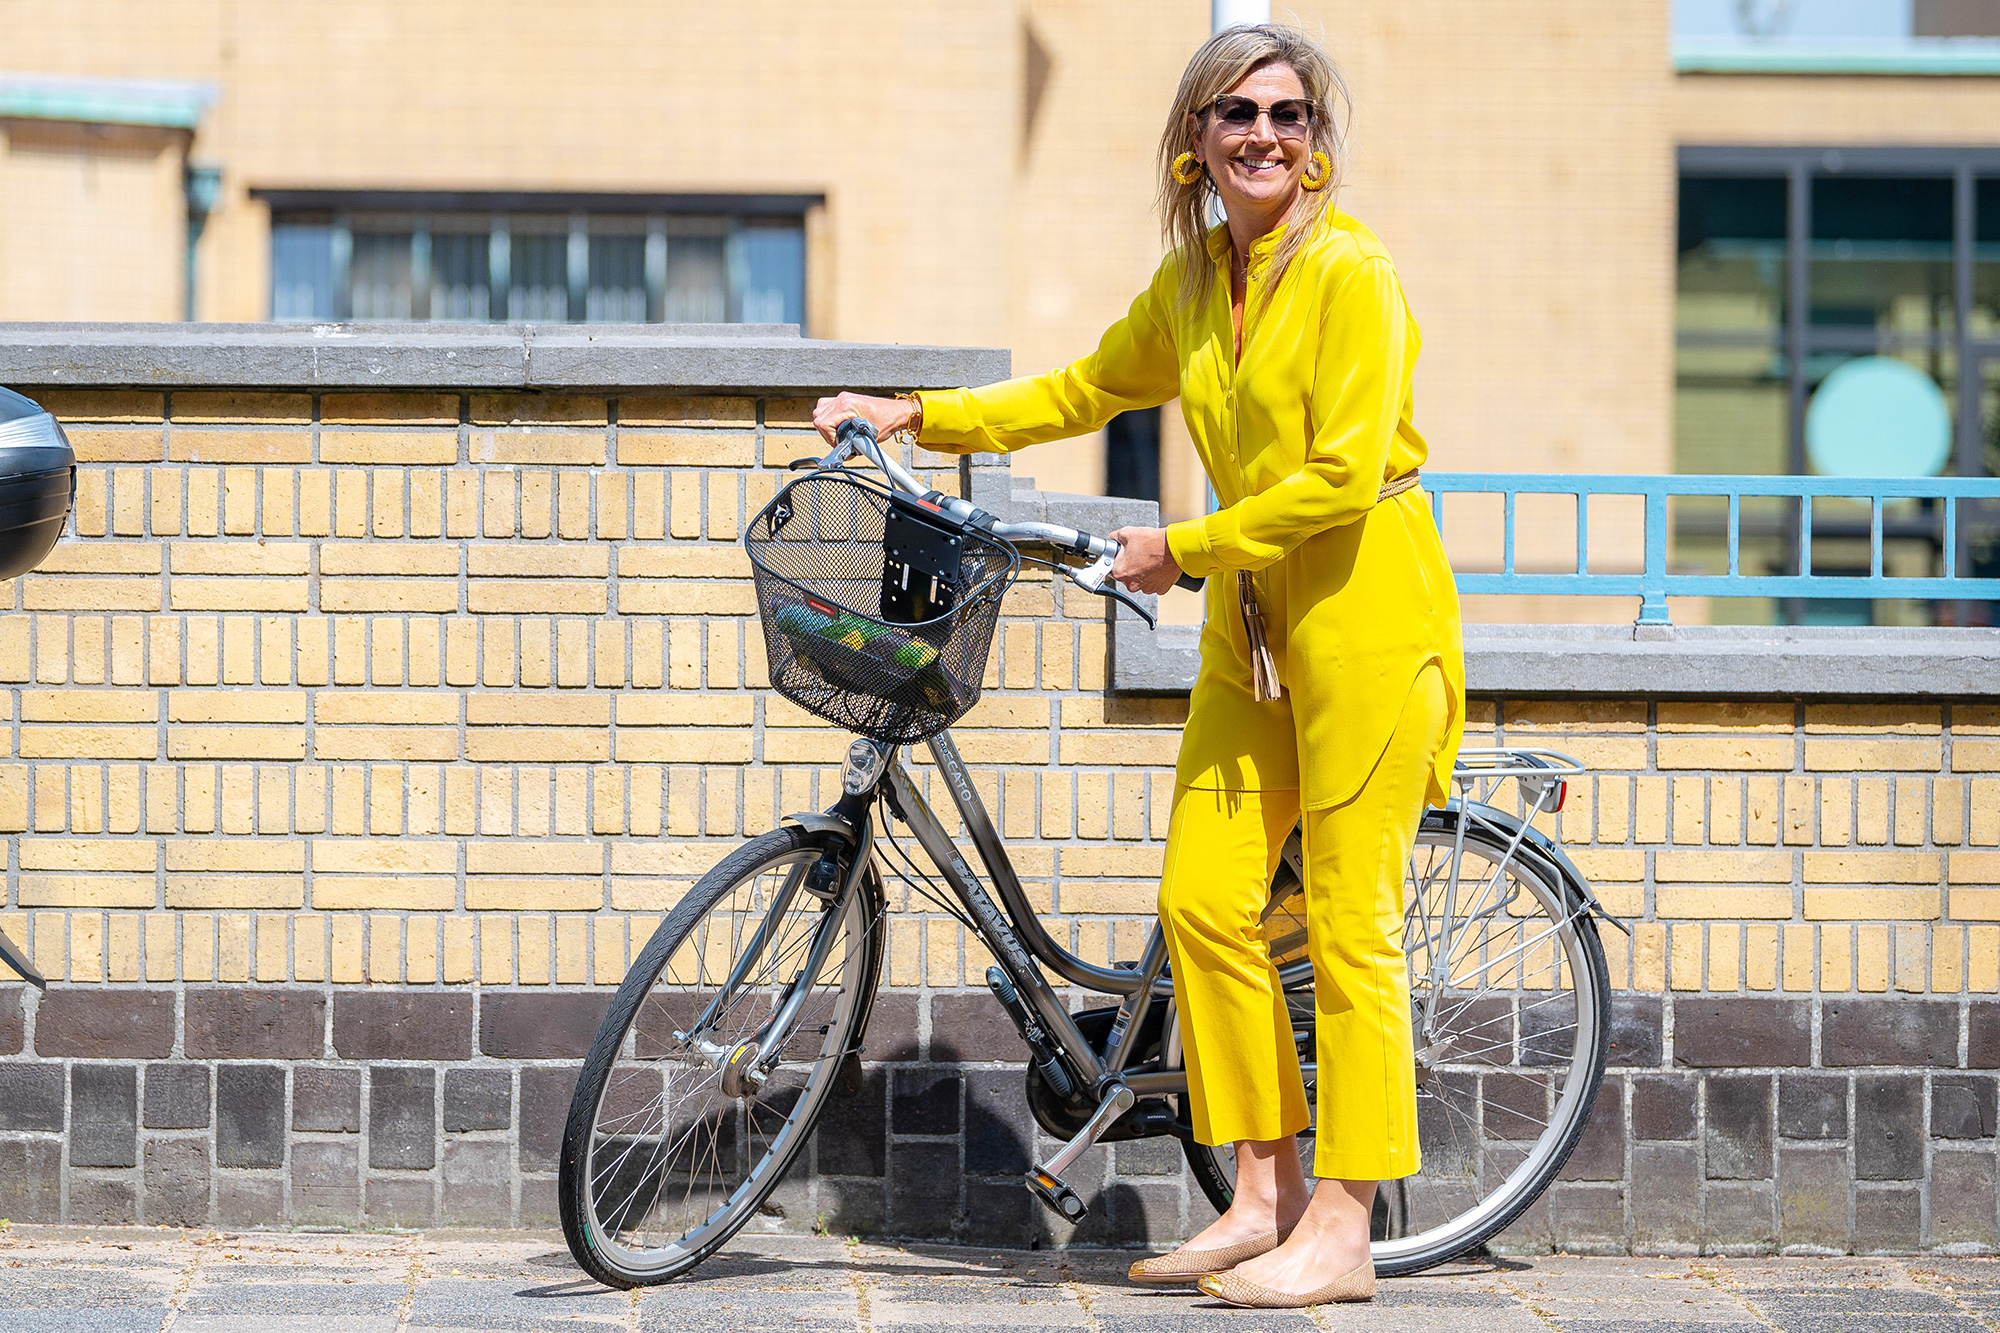 Queen Maxima Visits The Art Museum At The Hague, The Netherlands